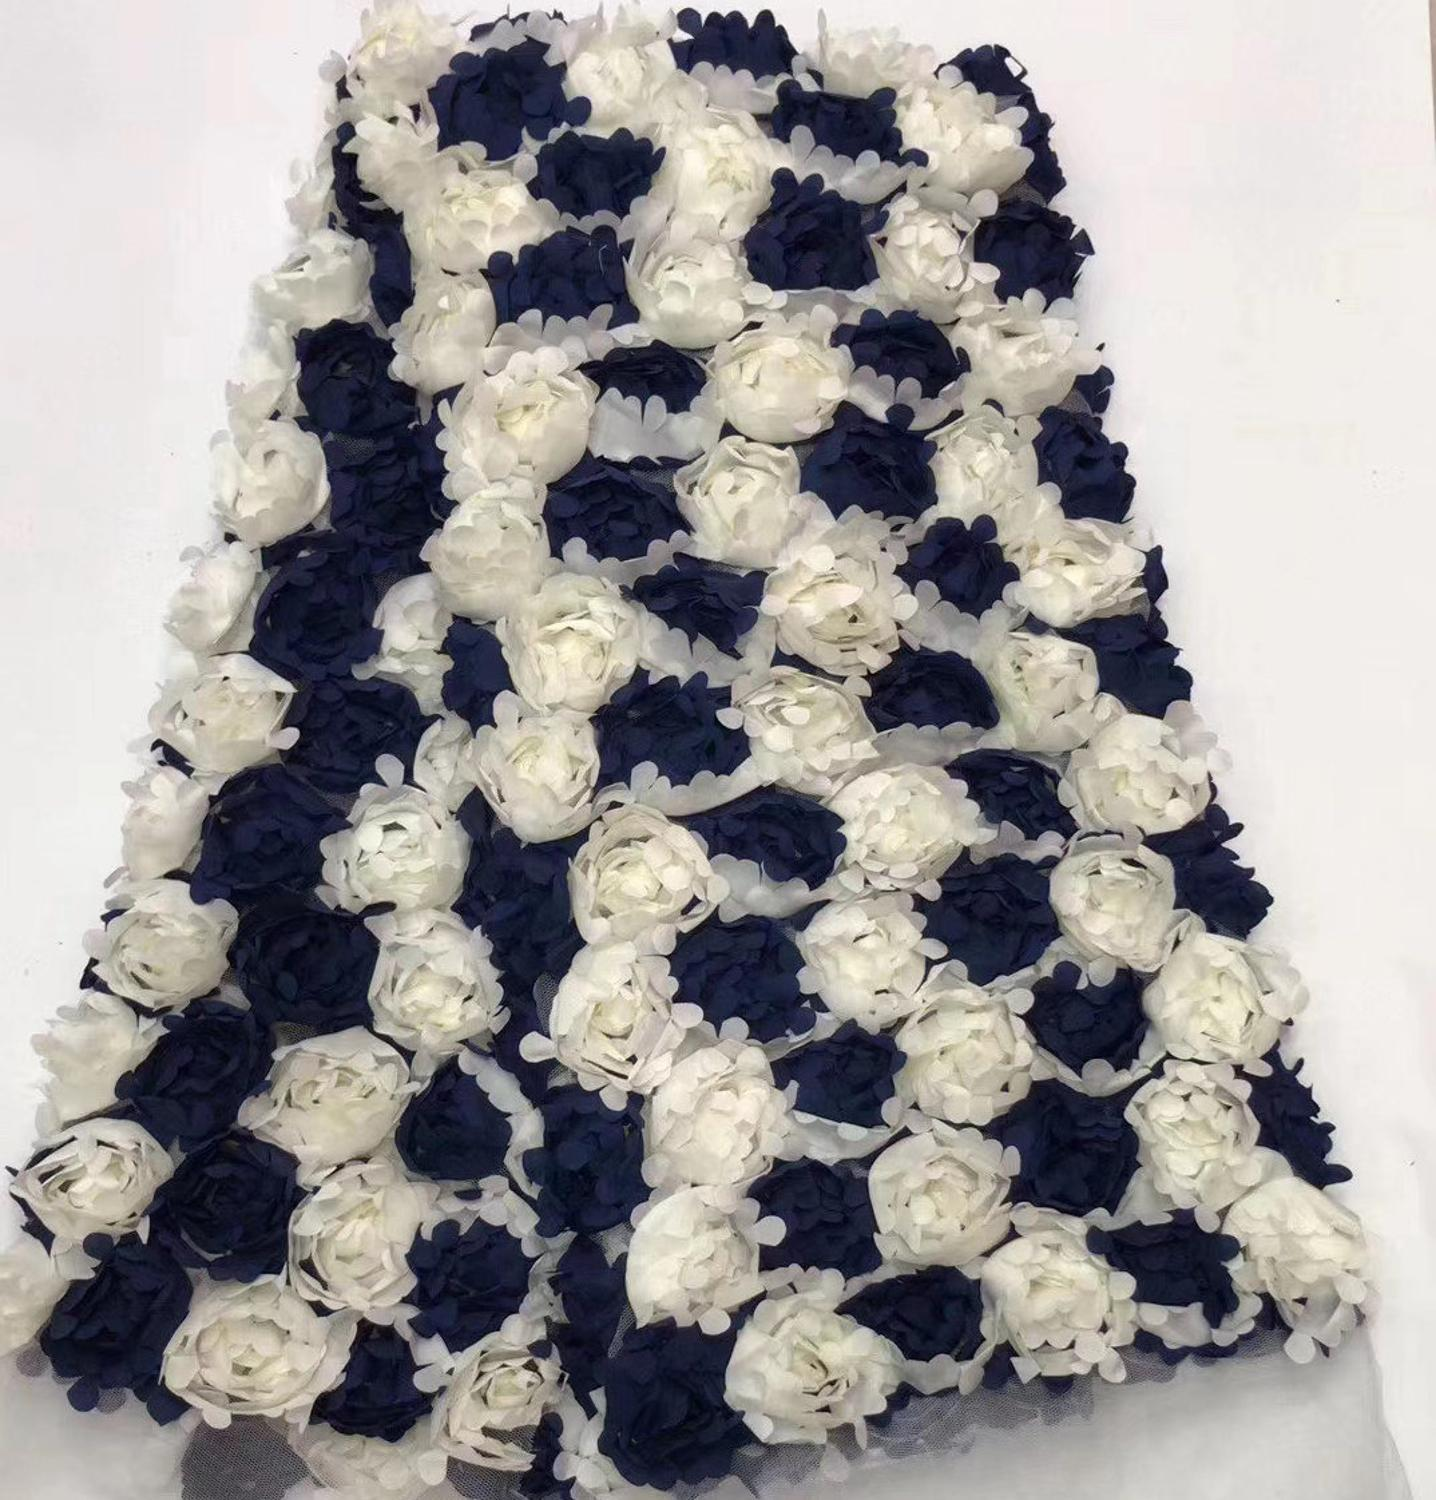 African Lace Fabric High Quality Lace Nigerian 3d Tulle Mesh Tulle Lace Fabrics For African Parties